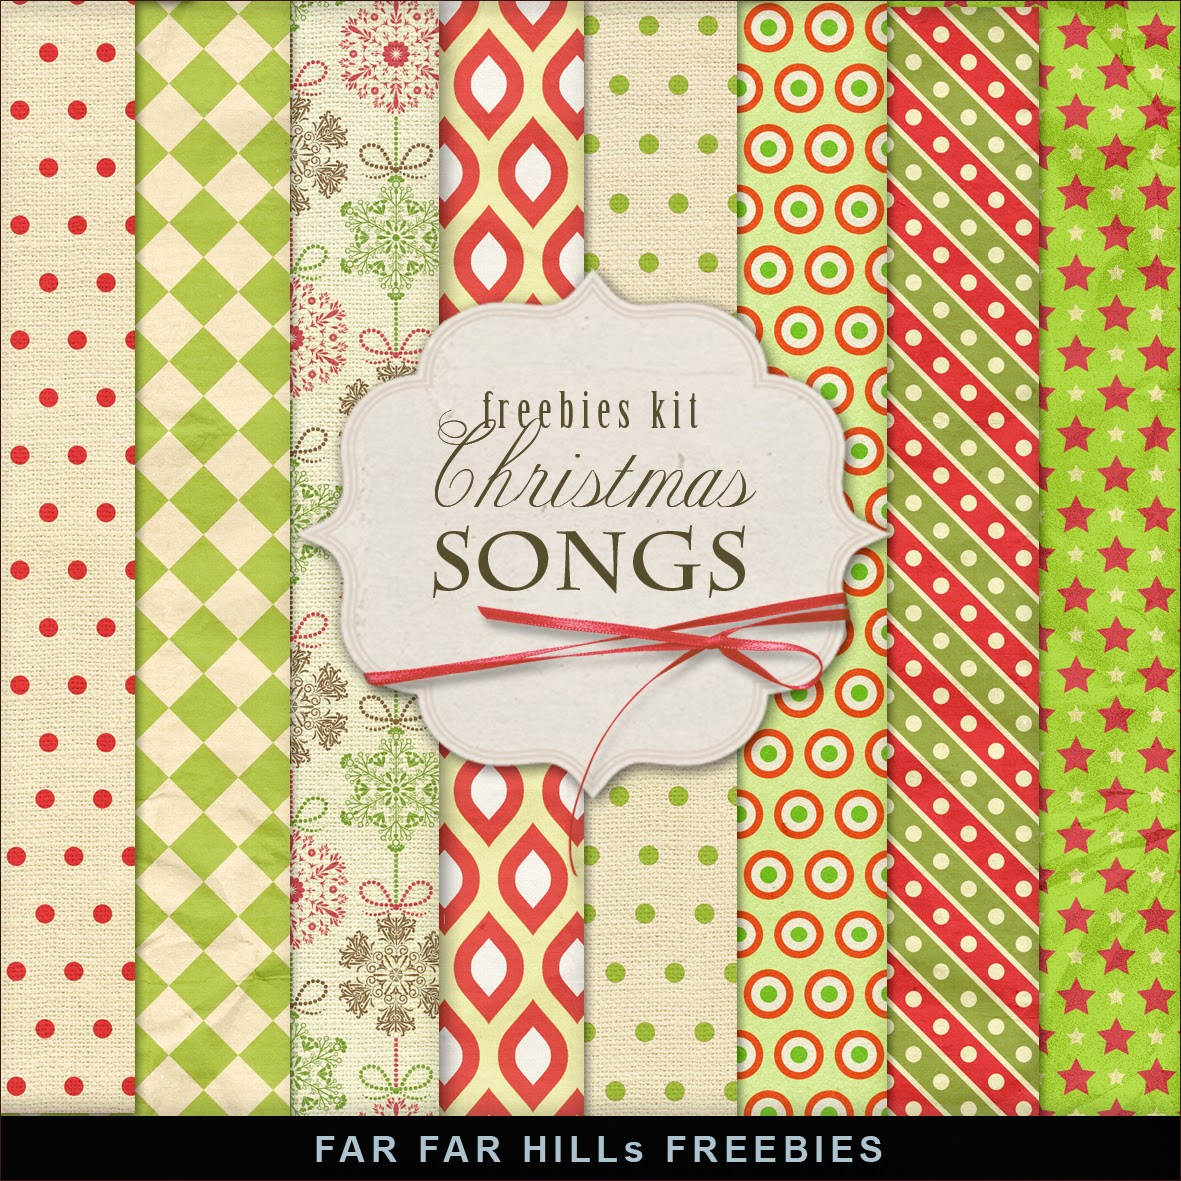 Freebies Kit of Papers - Christmas Songs